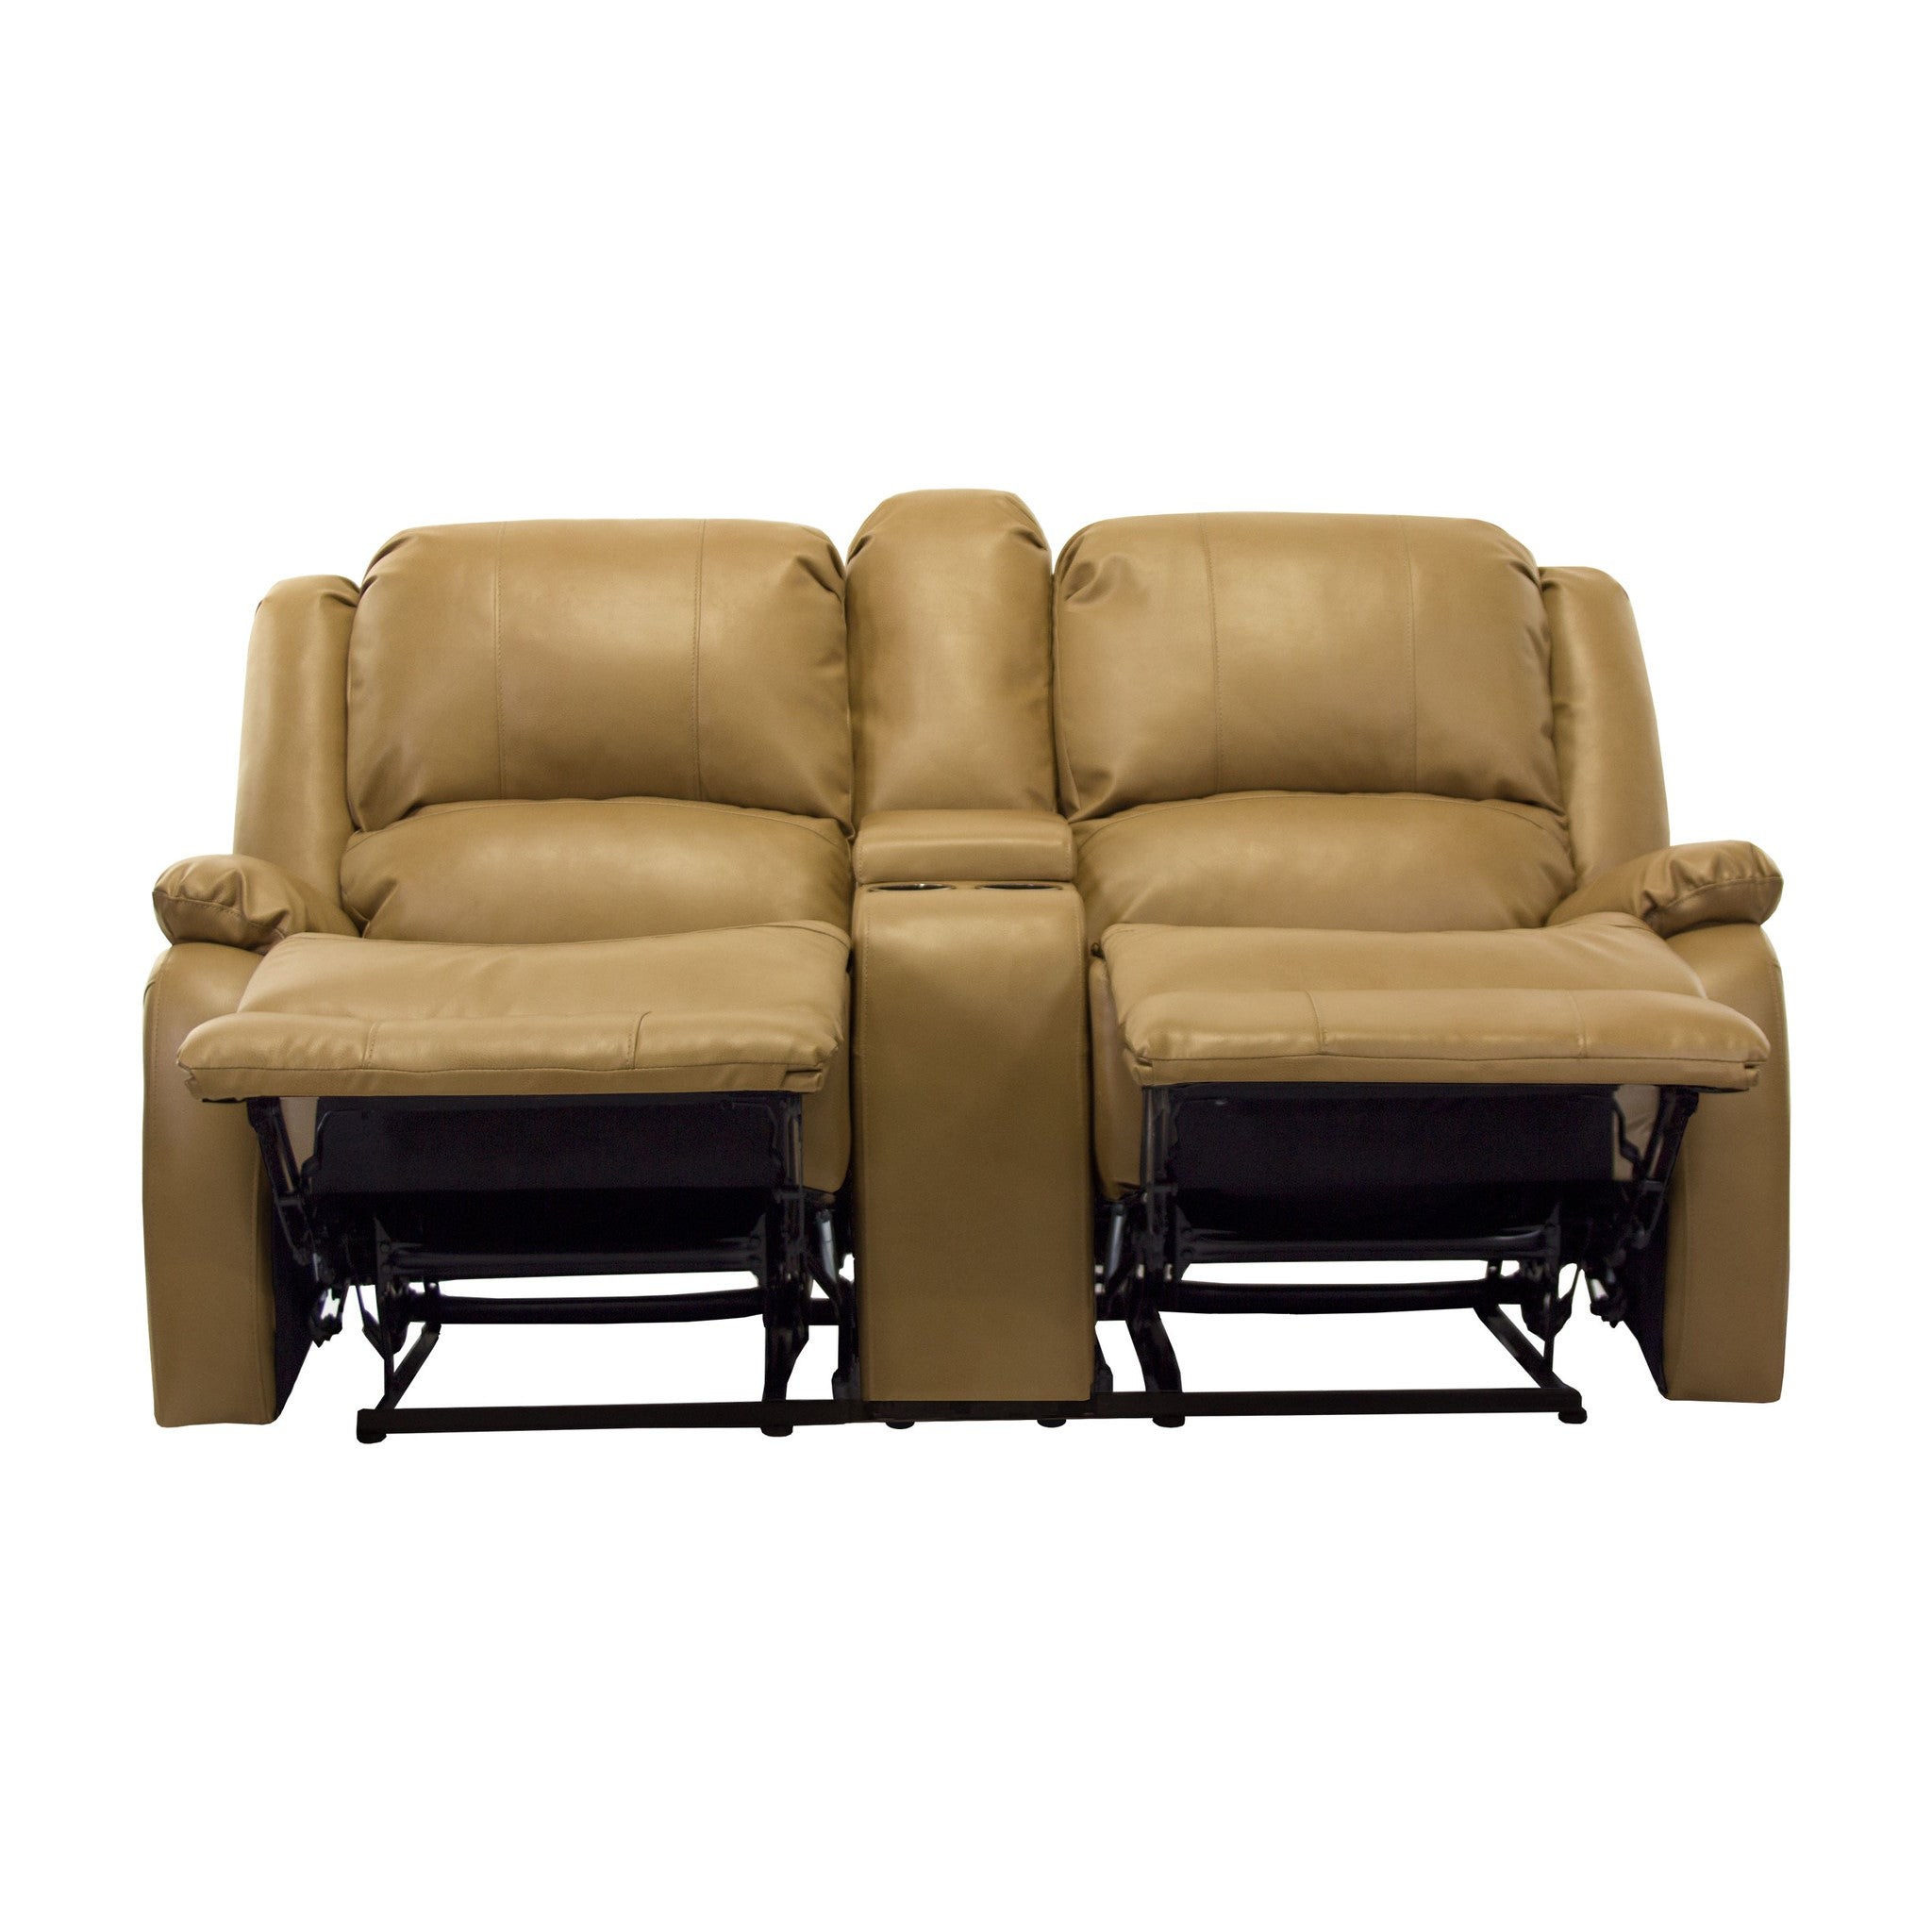 ... RecPro Charles 67  Double RV Wall Hugger Recliner Sofa w/ Console Toffee (Available ...  sc 1 st  RestoreRV.com & RecPro™ Recliner Sofa | RestoreRV | RestoreRV.com islam-shia.org